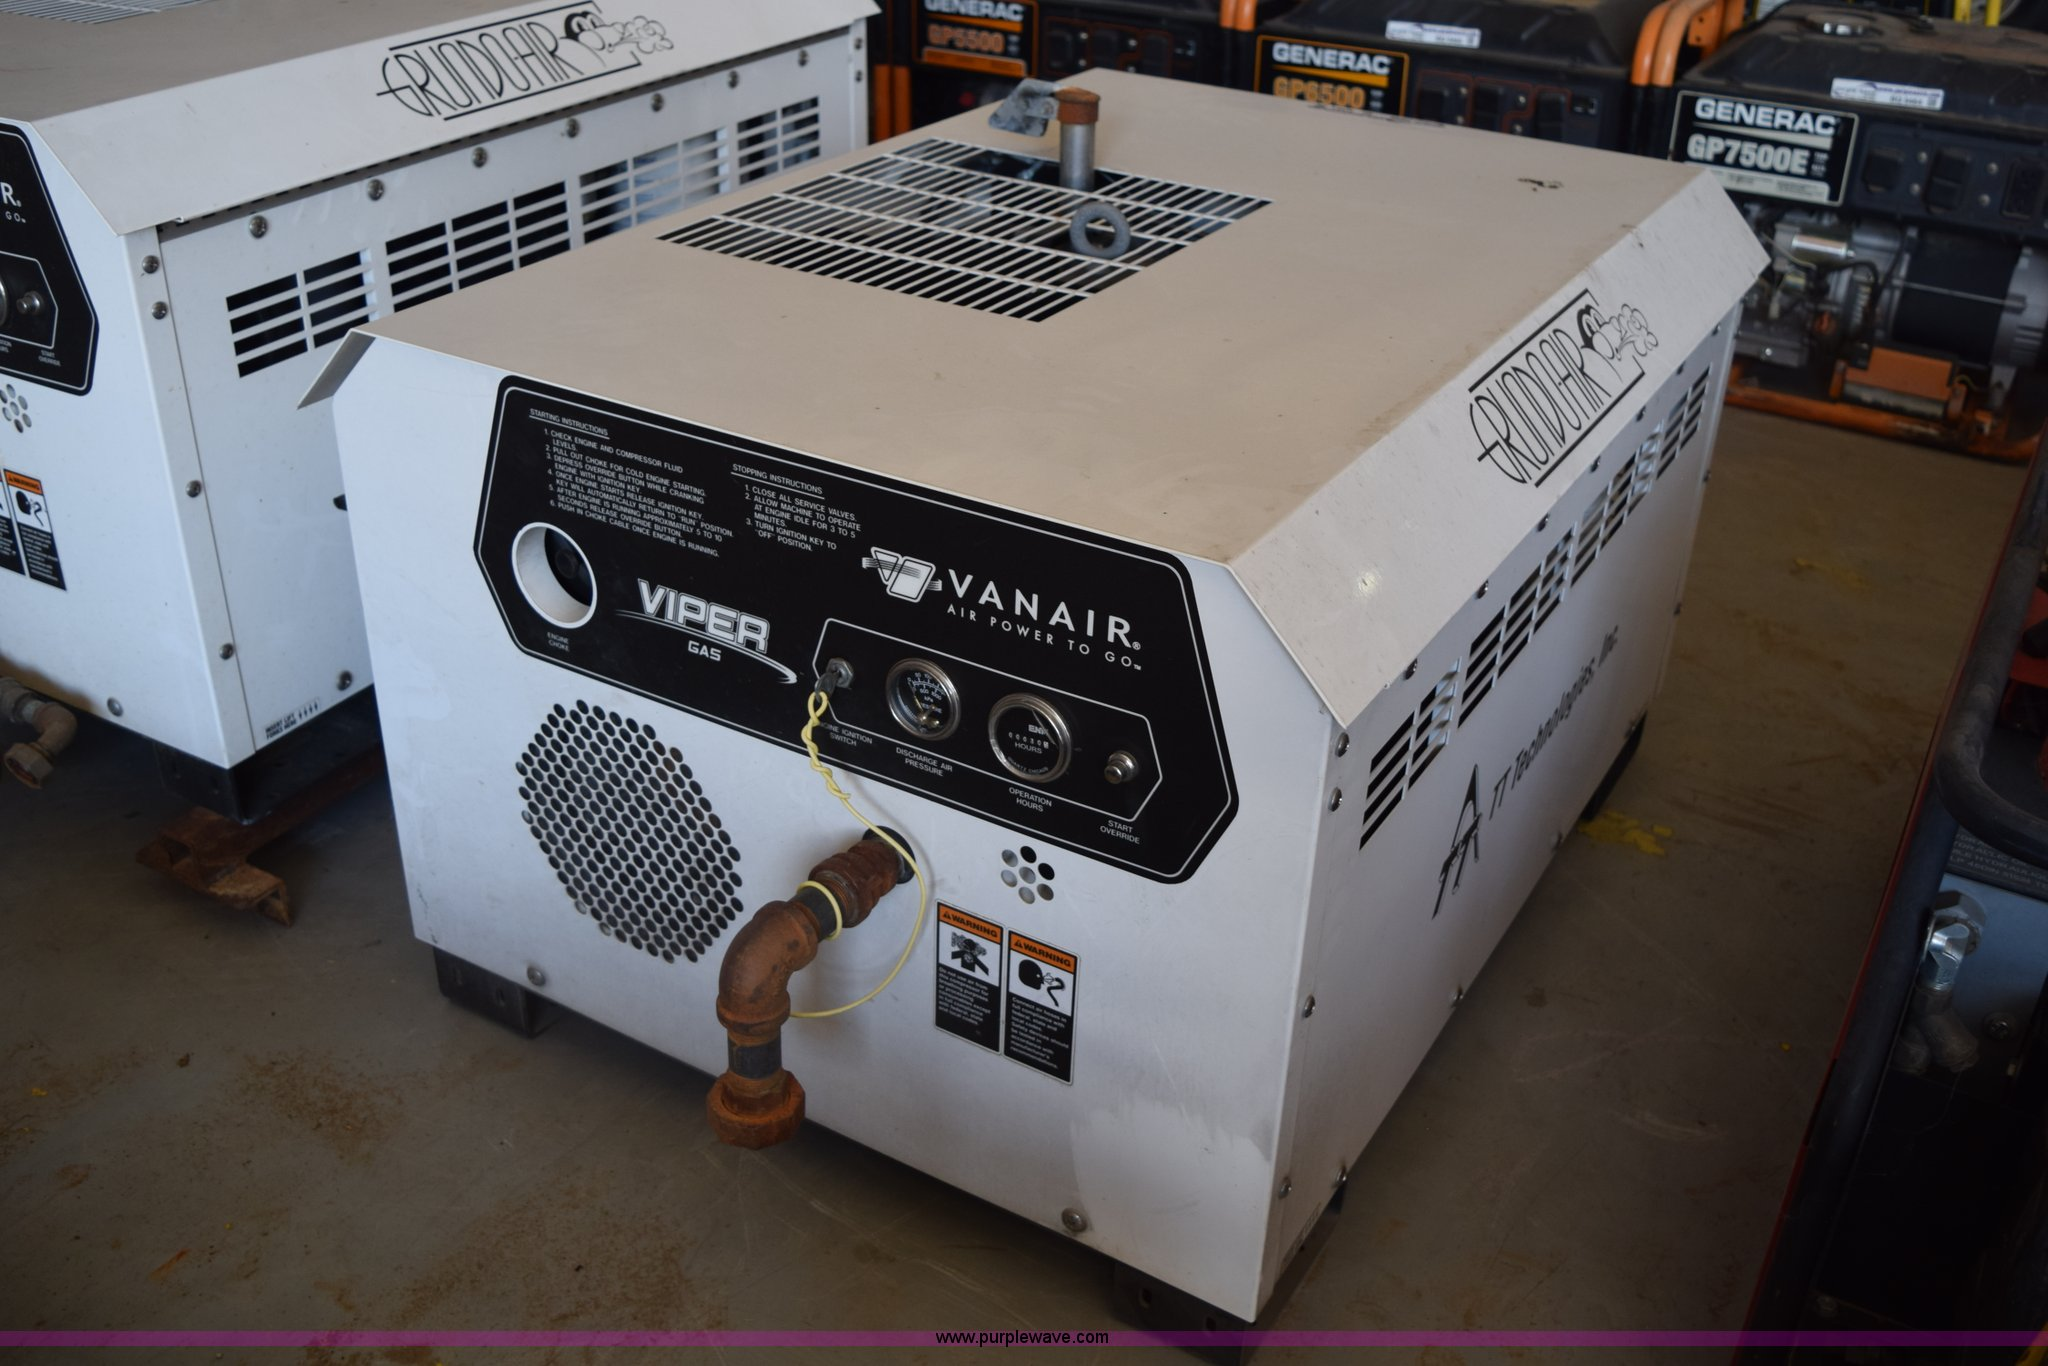 Vanair viper 70 air compressor item bi9381 sold septemb full size in new window asfbconference2016 Image collections